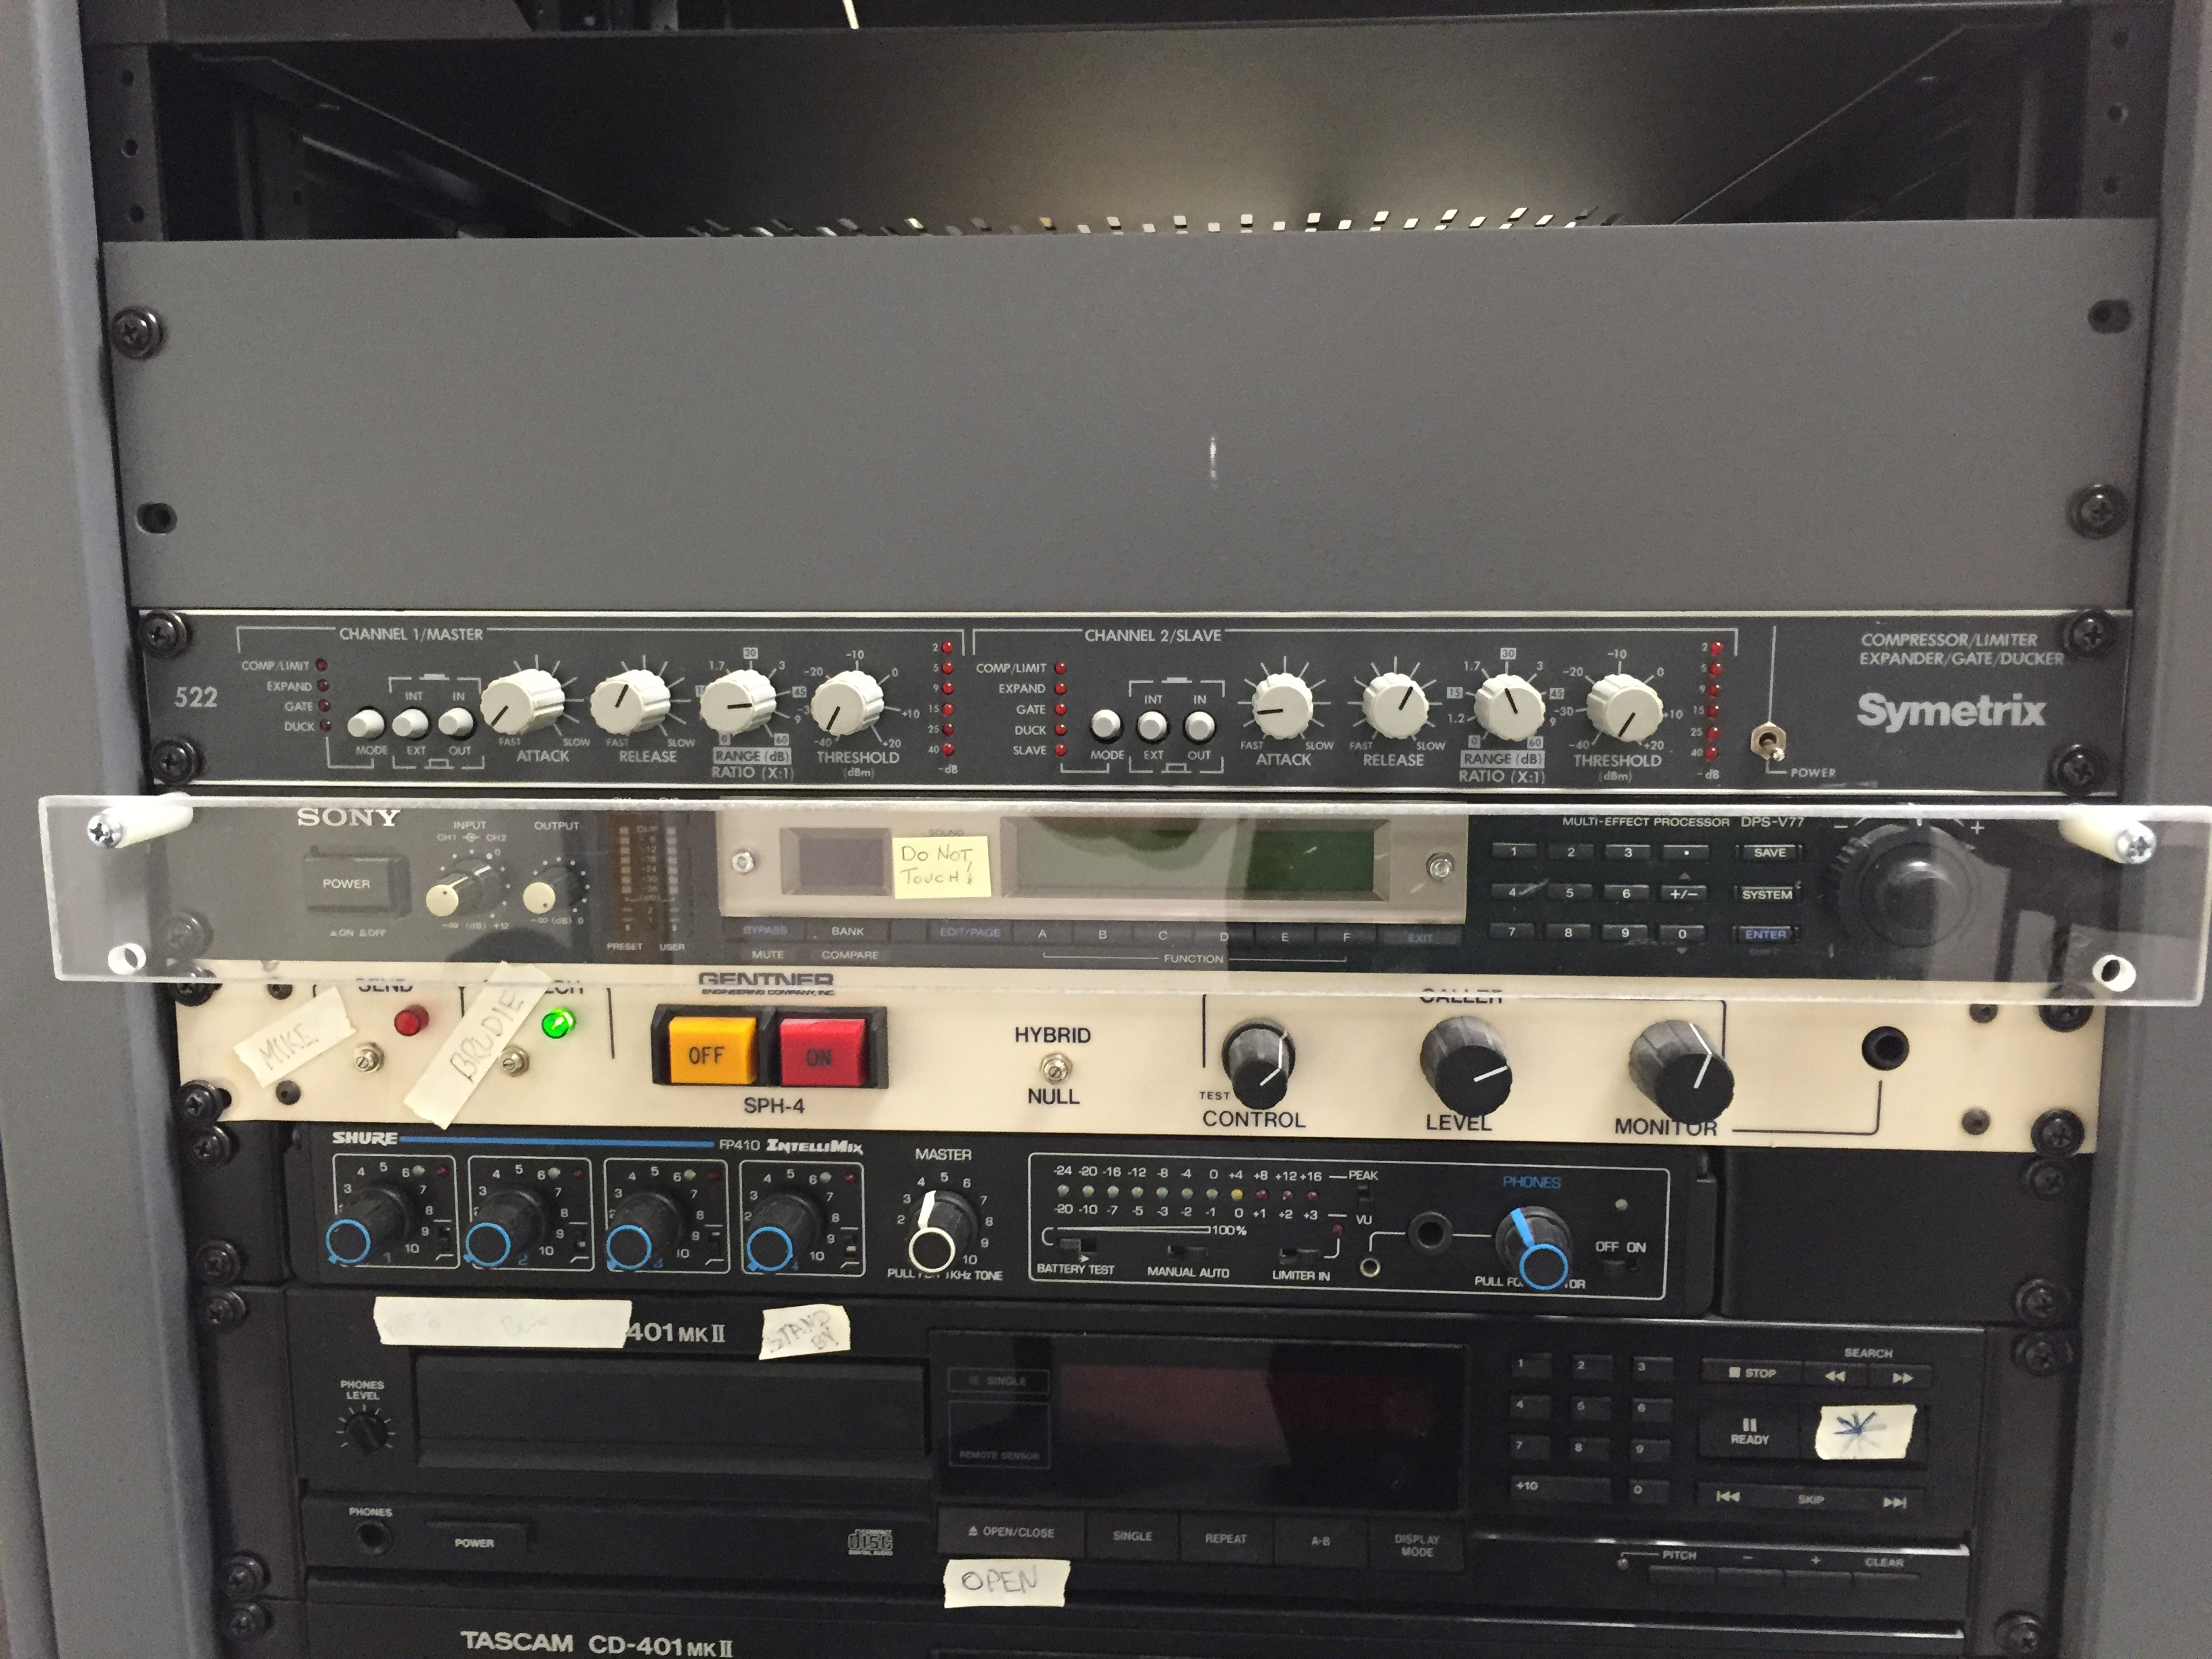 Audio Rack: Completely wired, with equipment, drawer, patches